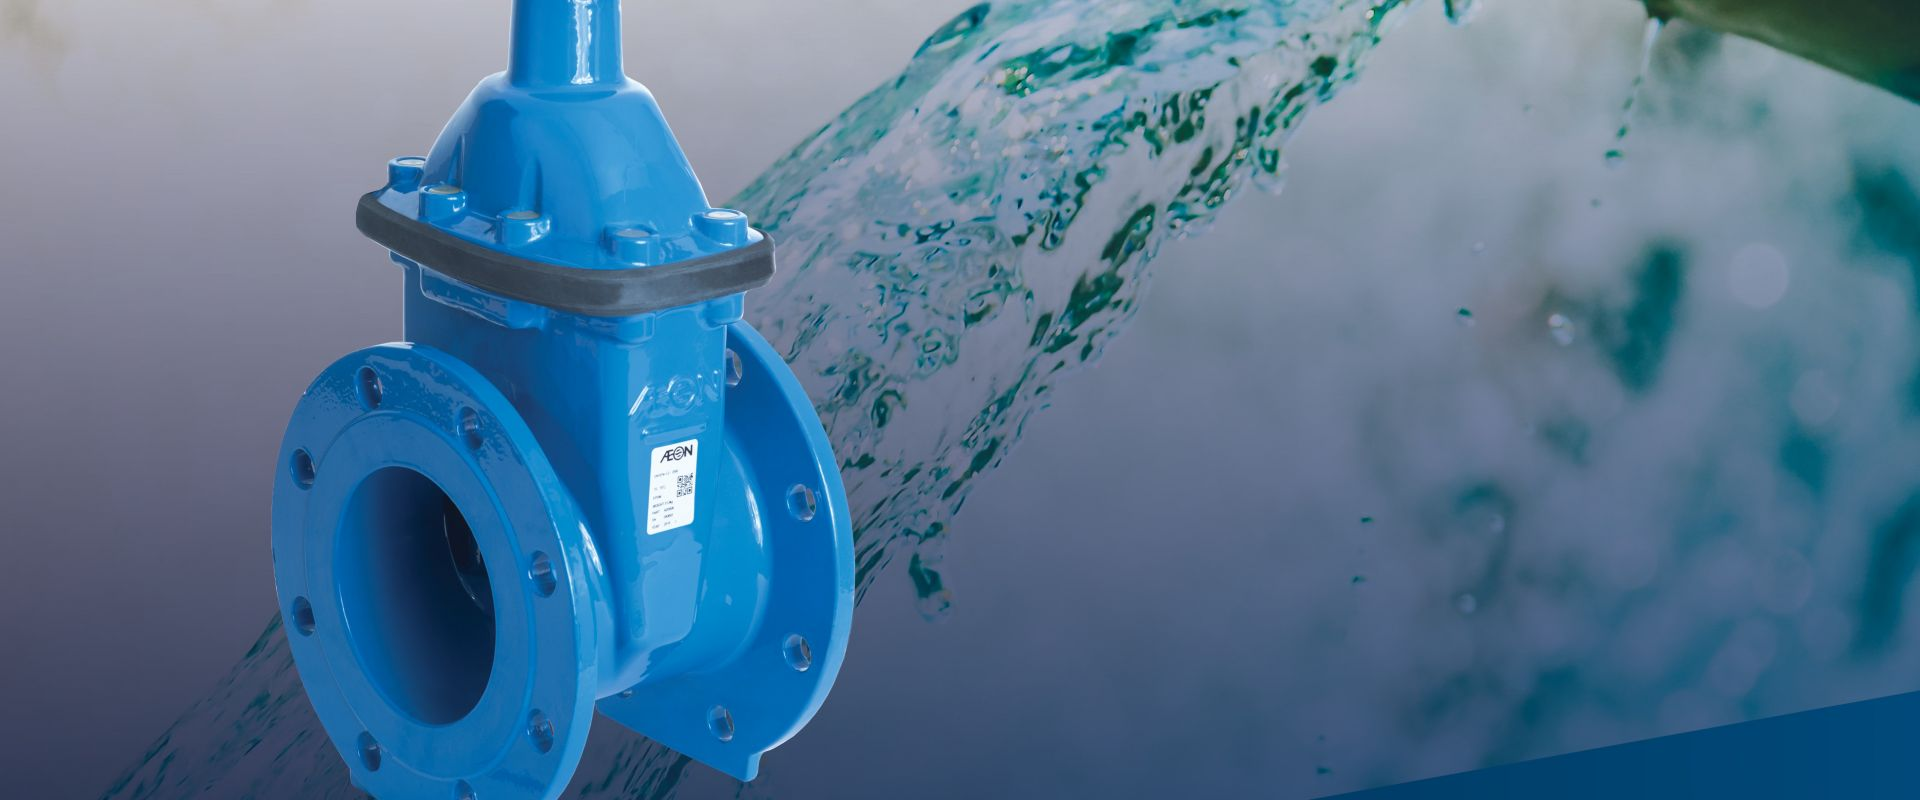 EcoValve for water